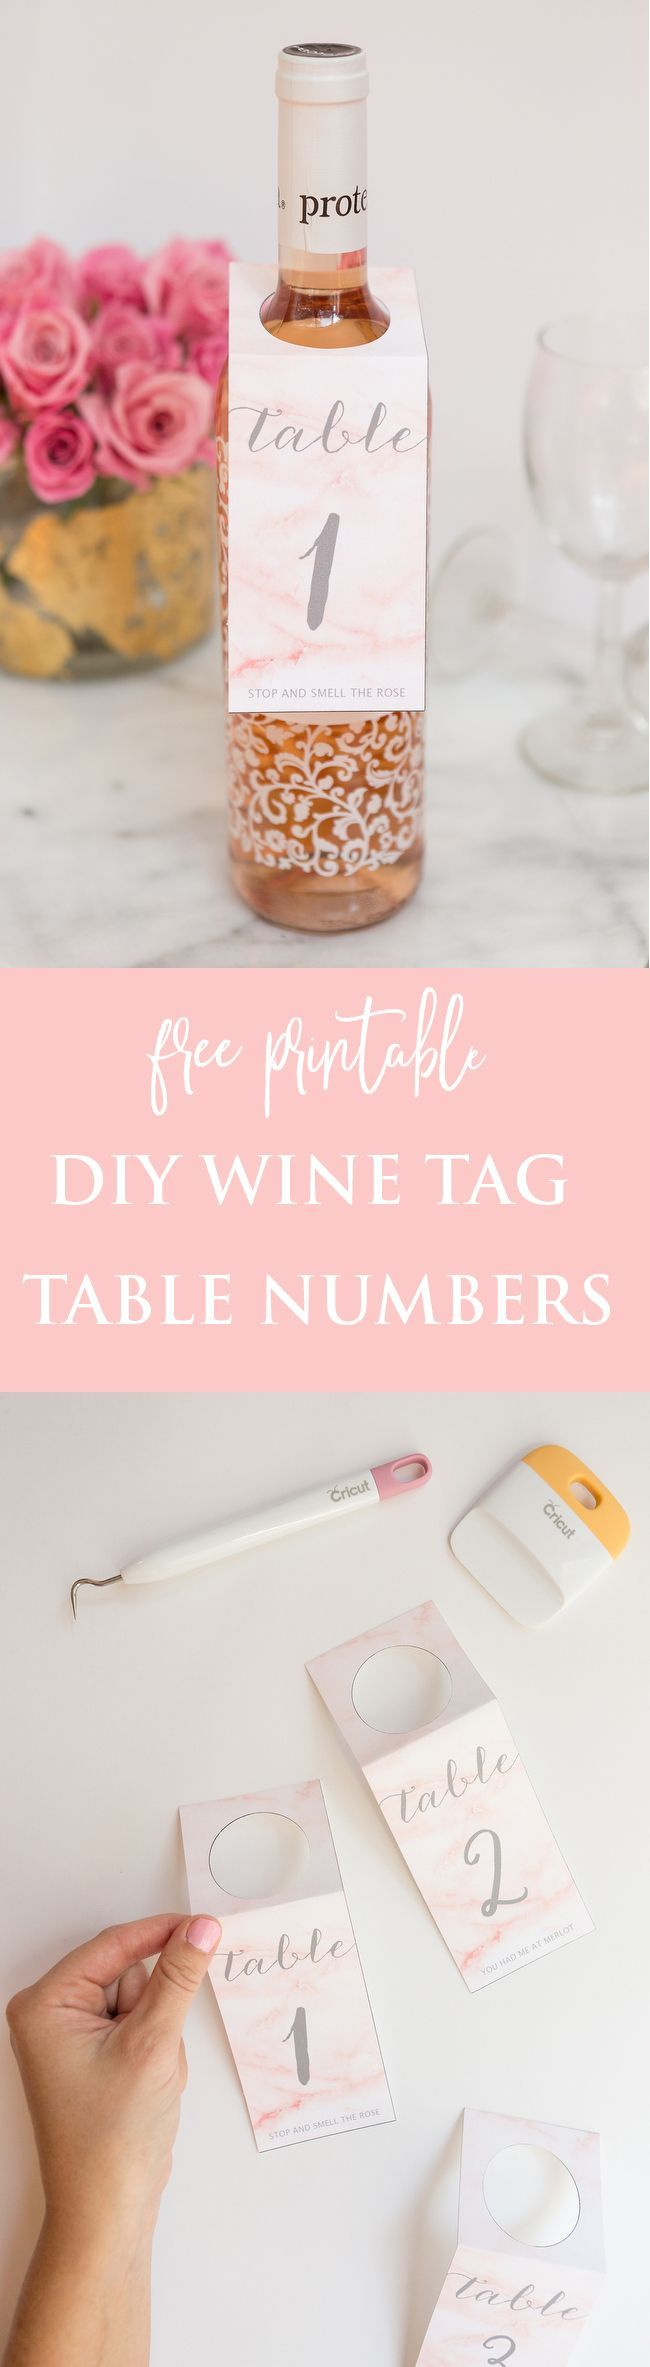 DIY Wine Tag Table Numbers For Your Wedding | Table numbers and Wine